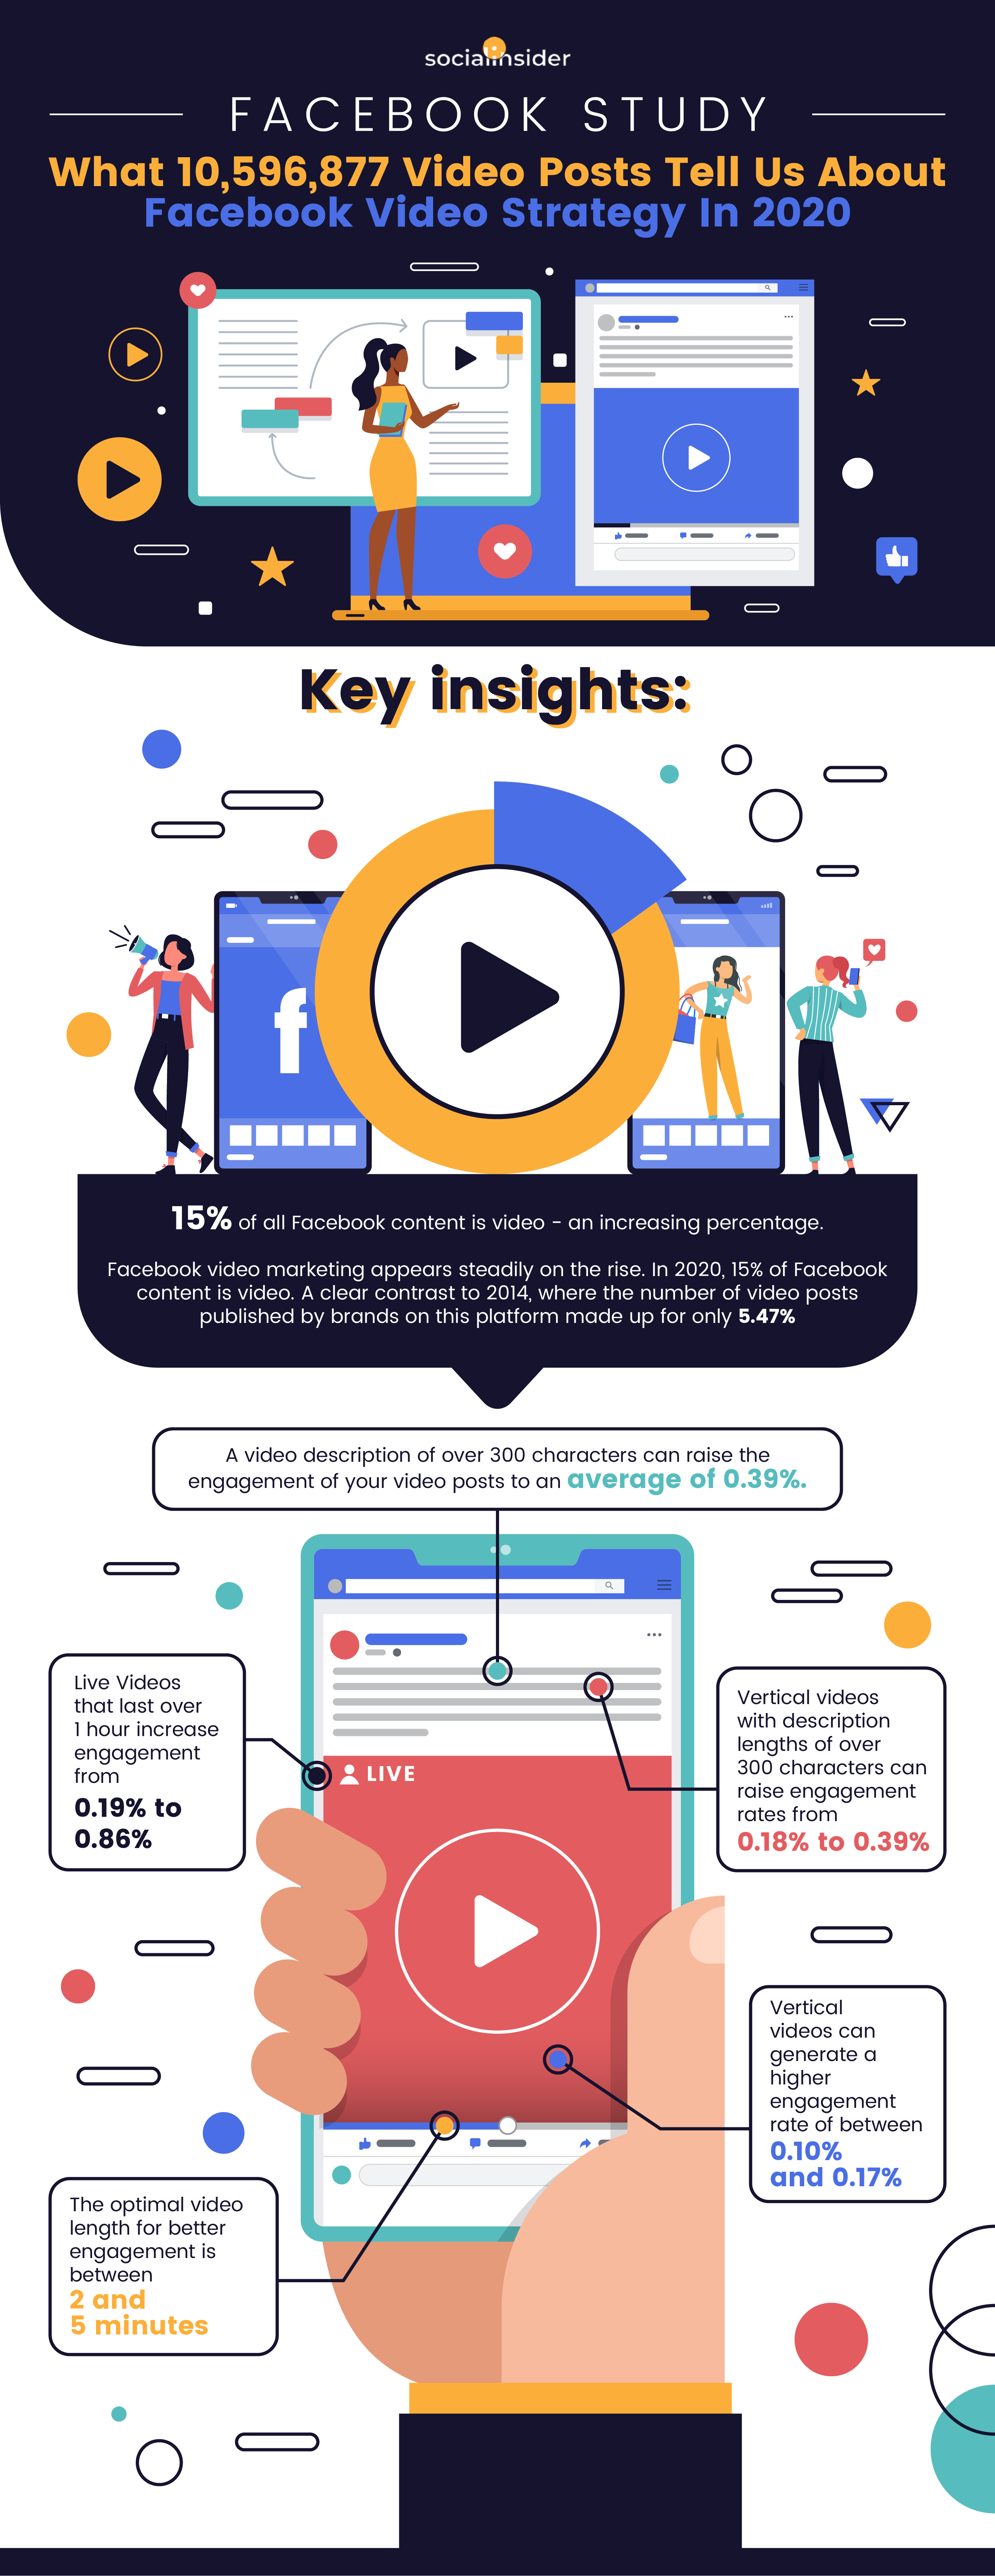 How to Use Facebook Video Marketing to Drive Conversions [Infographic]